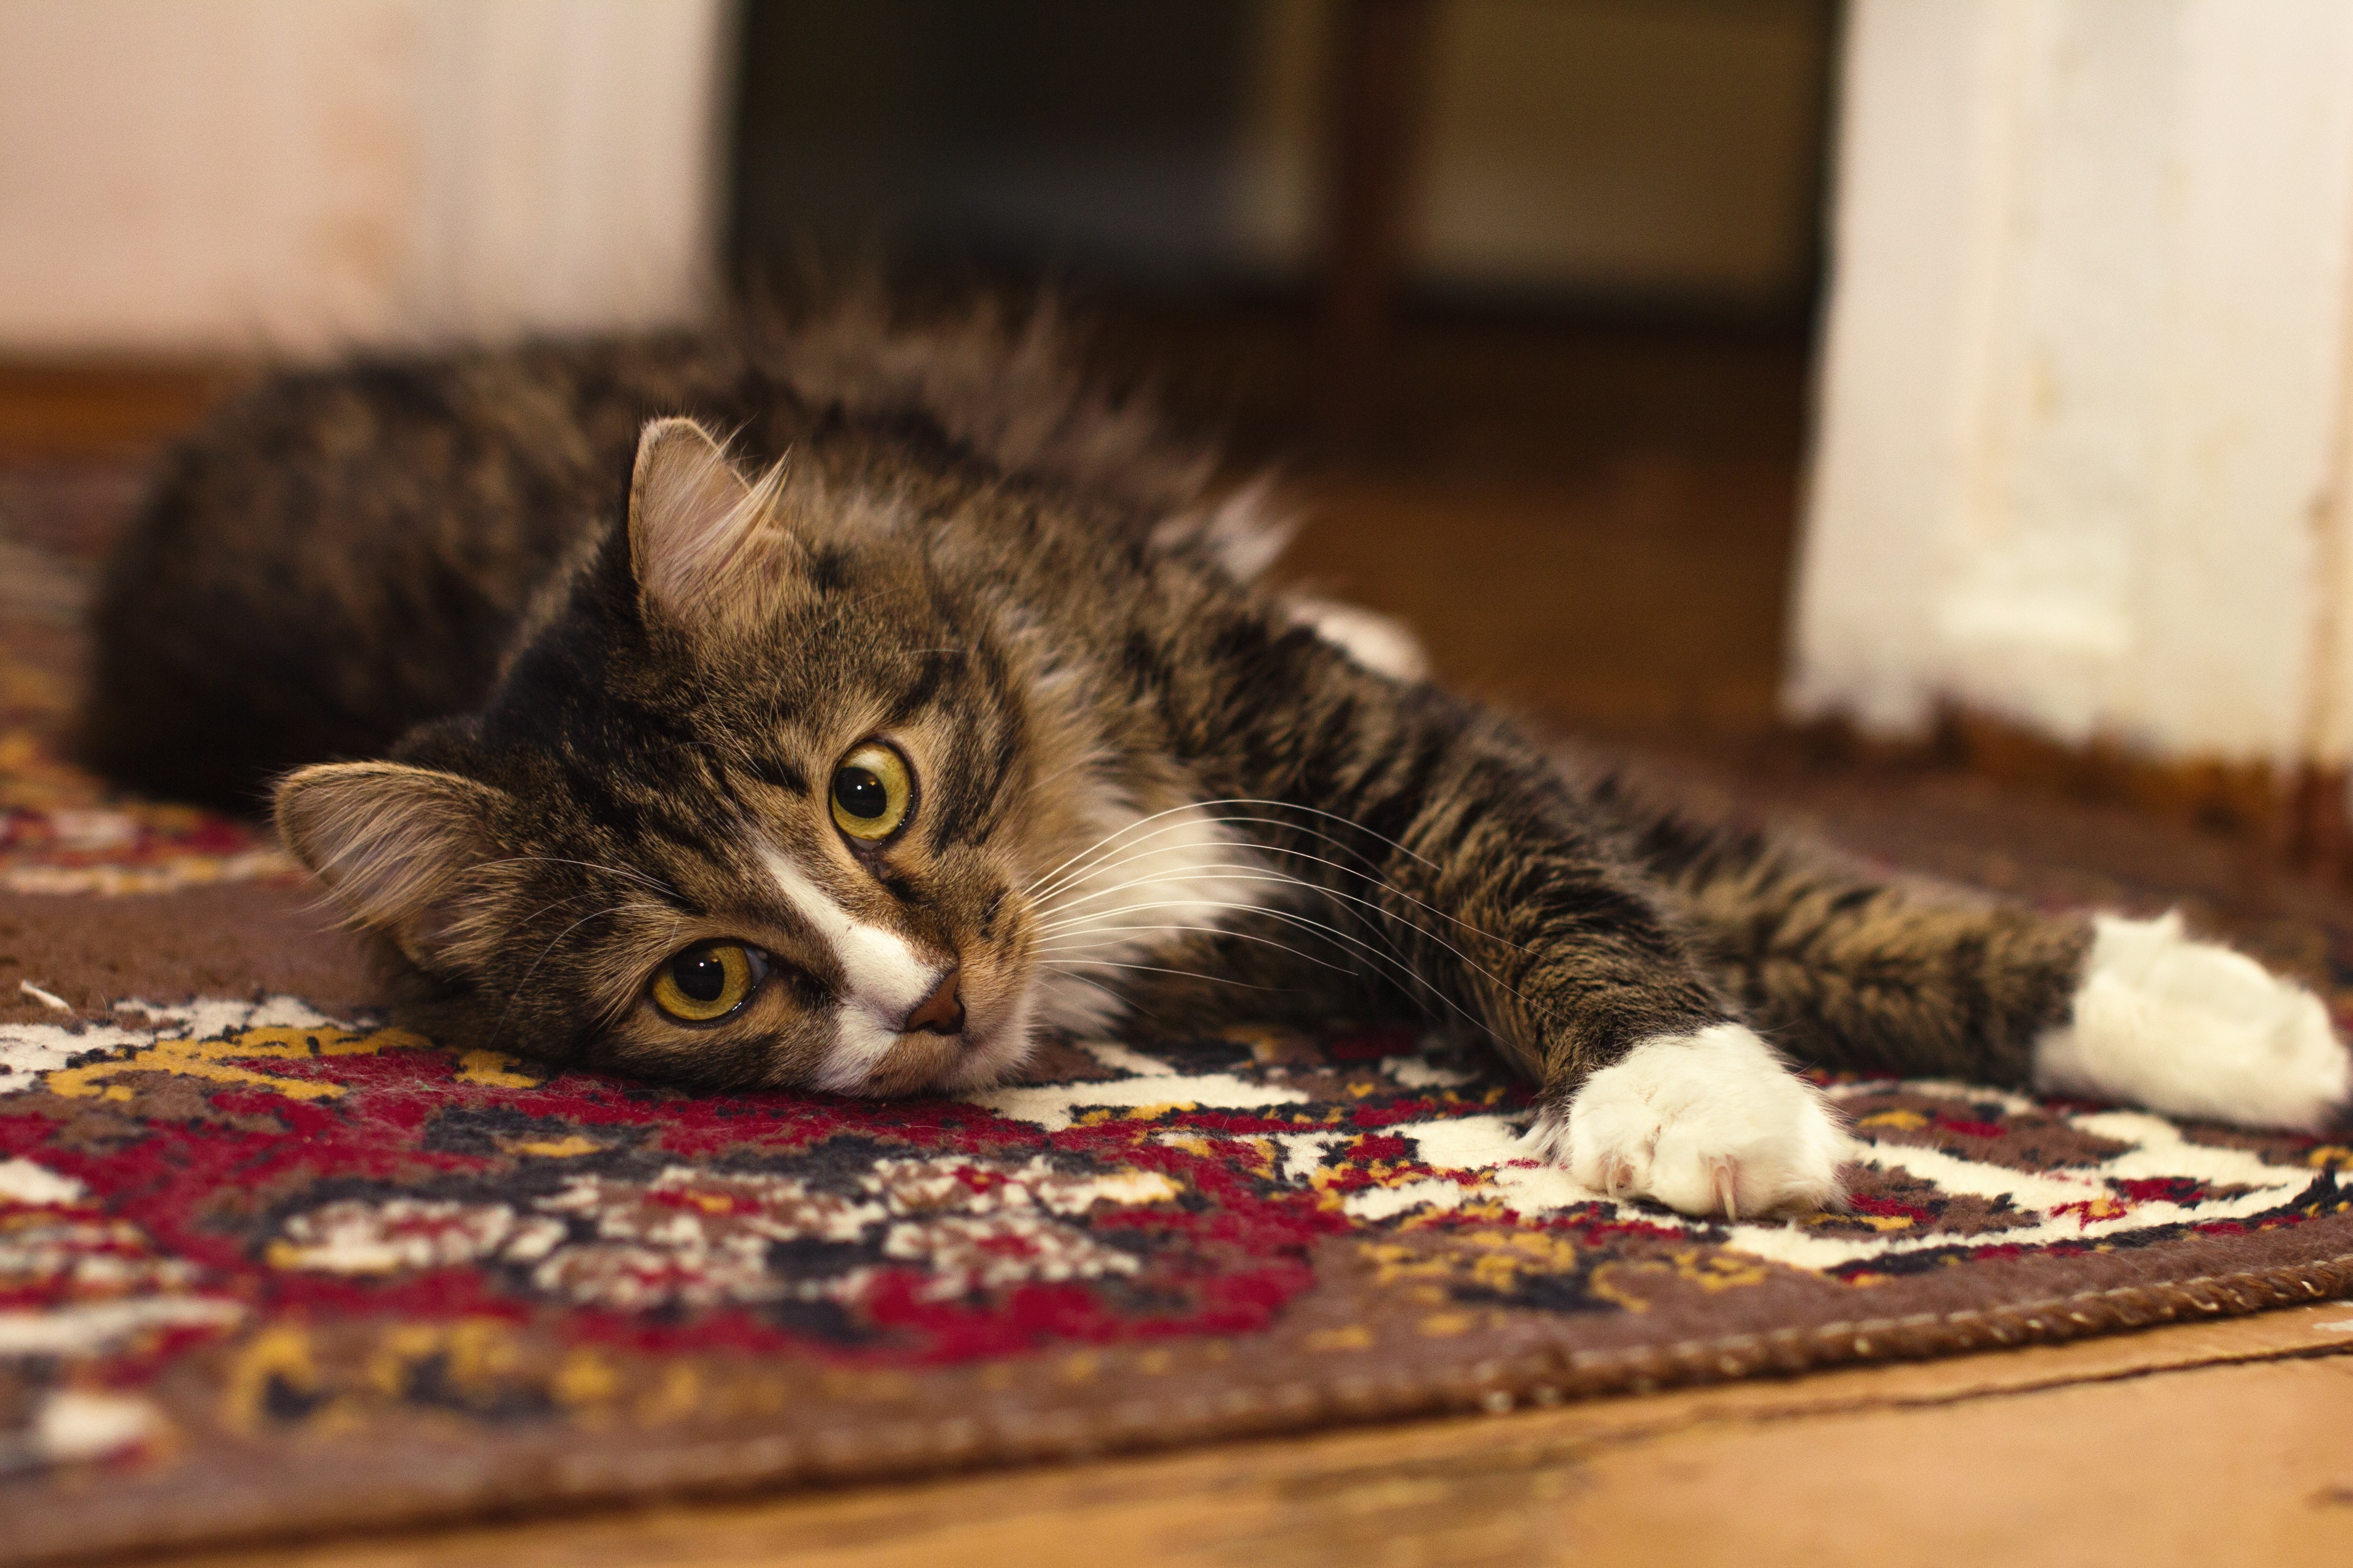 brown and white rug. Black Gray And White Tabby Cat Resting In Brown Red Rug, Feline Rug